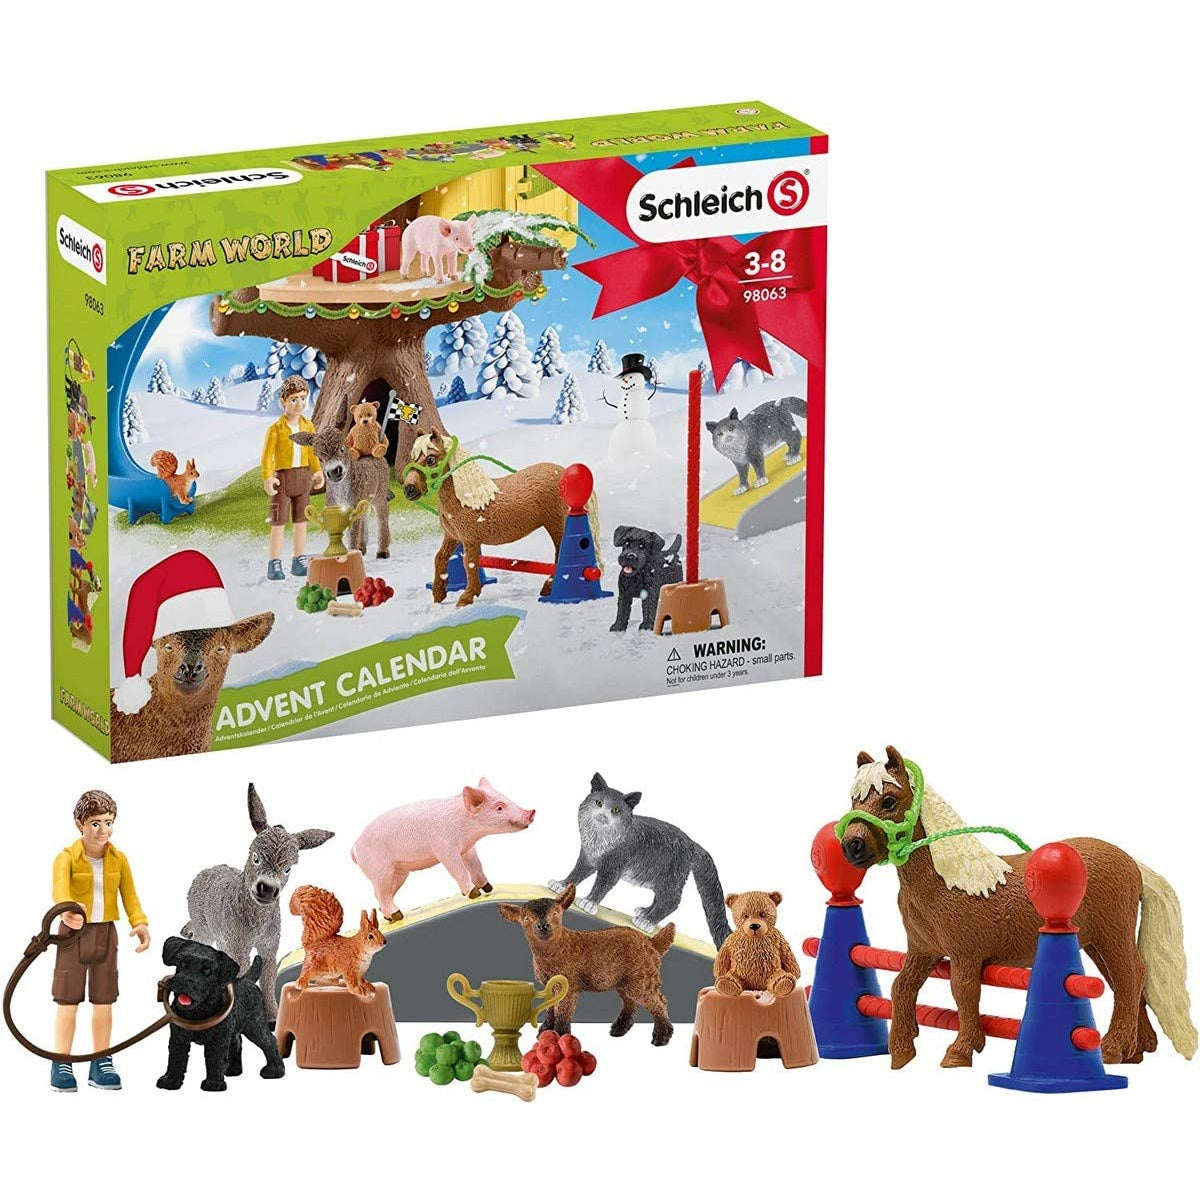 Schleich Advent Calendar Farm World 2020 98063 canada ontario